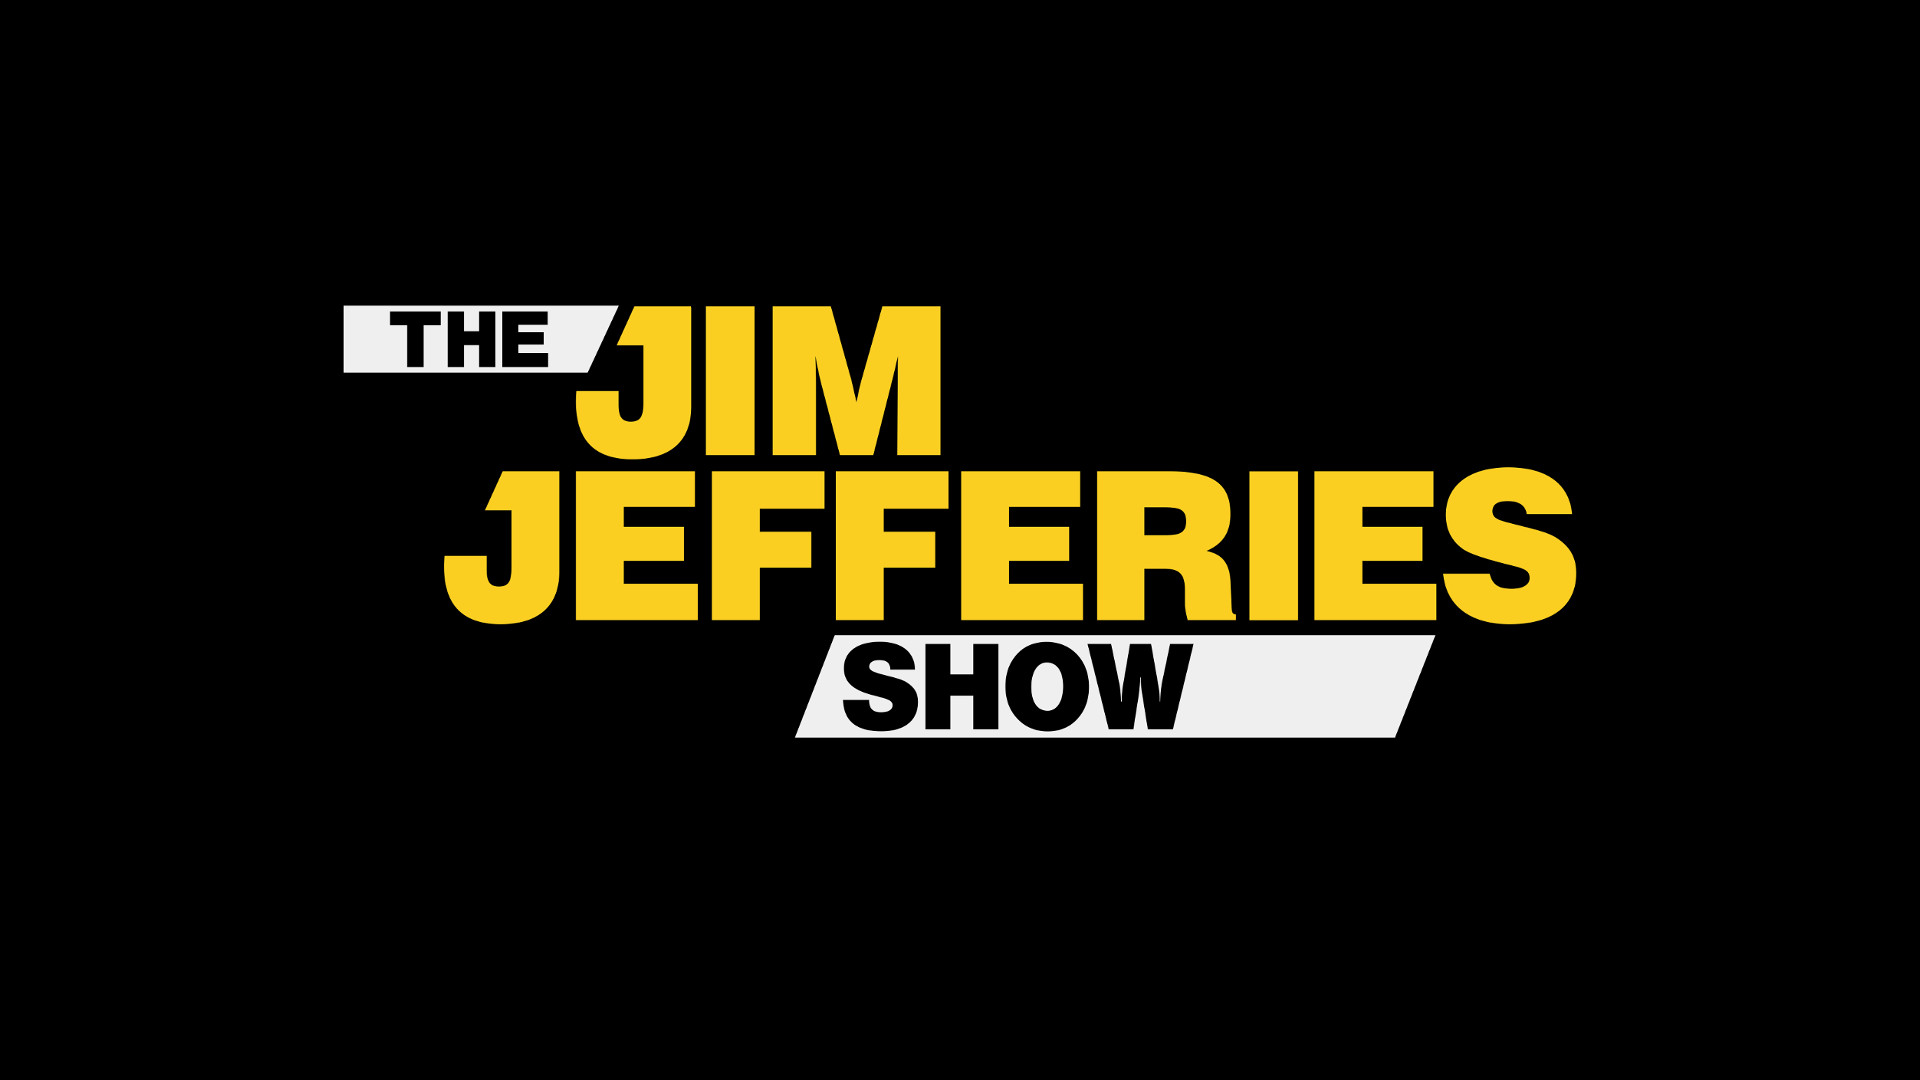 what time does The Jim Jefferies Show come on